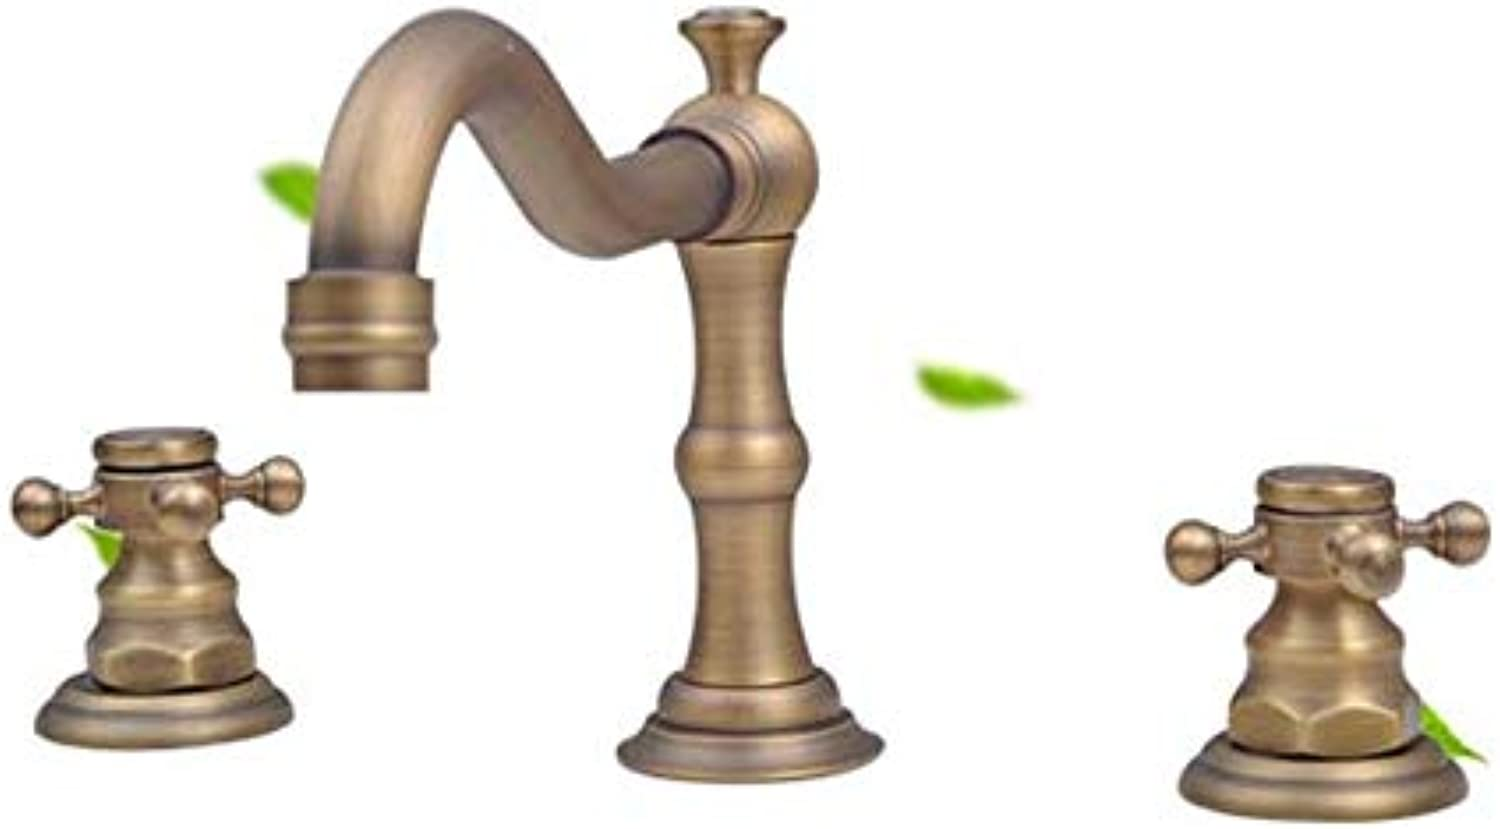 HDLWIS Badezimmerwand Wasserhahn, kreativer Wasserhahn europischen dreiteiligen Spiralhahn, Sink Faucet Antique Copper Basin Mixer Tap